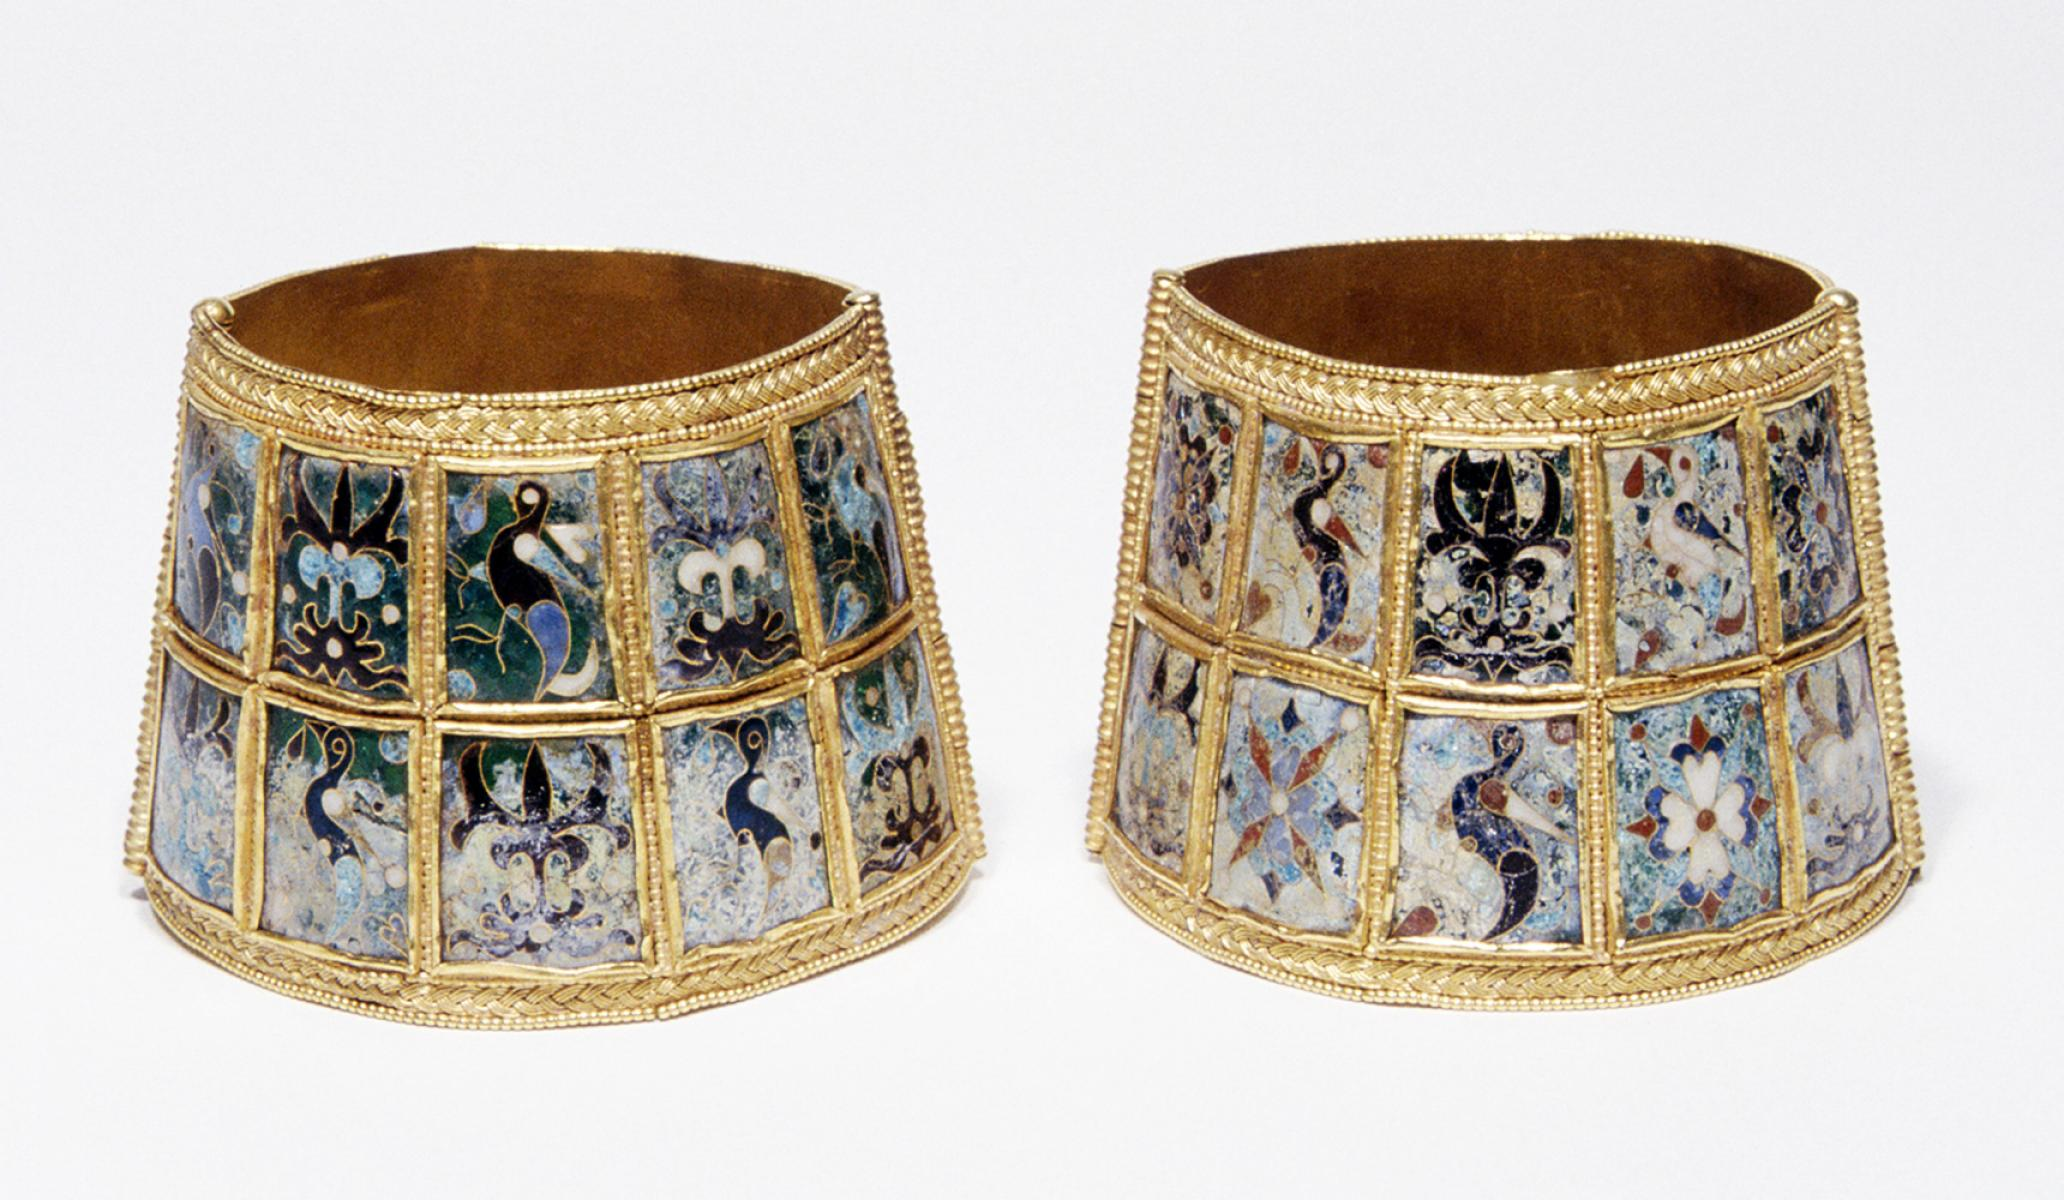 Gold bracelets with enamel decoration